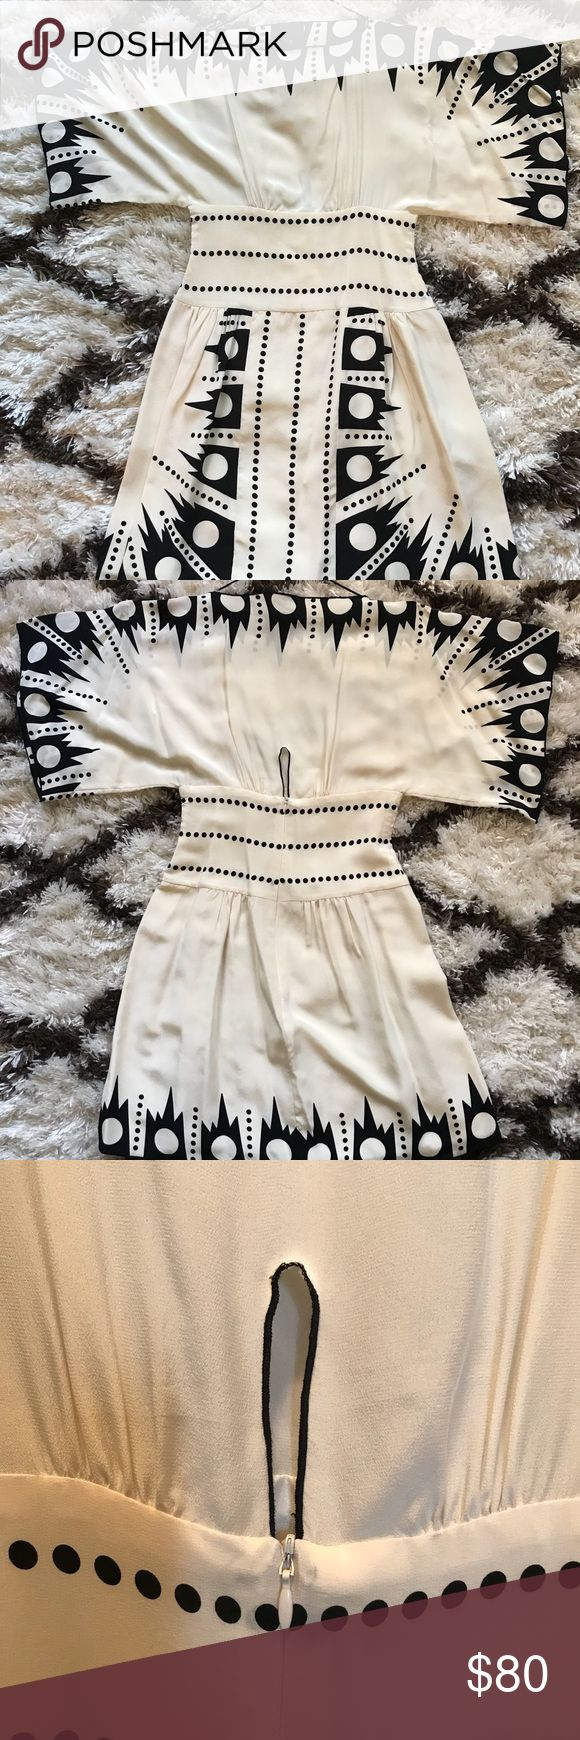 Anna Sui Geoprint Mini • authentic Anna Sui kimono sleeve mini • cream & Black geo print • keyhole zipper back • cummerbund waist • lined skirt • very slight pulling of fabric at busy line - please see pic • 100% silk ~ dry clean only  - take me to eden - Anna Sui Dresses Mini